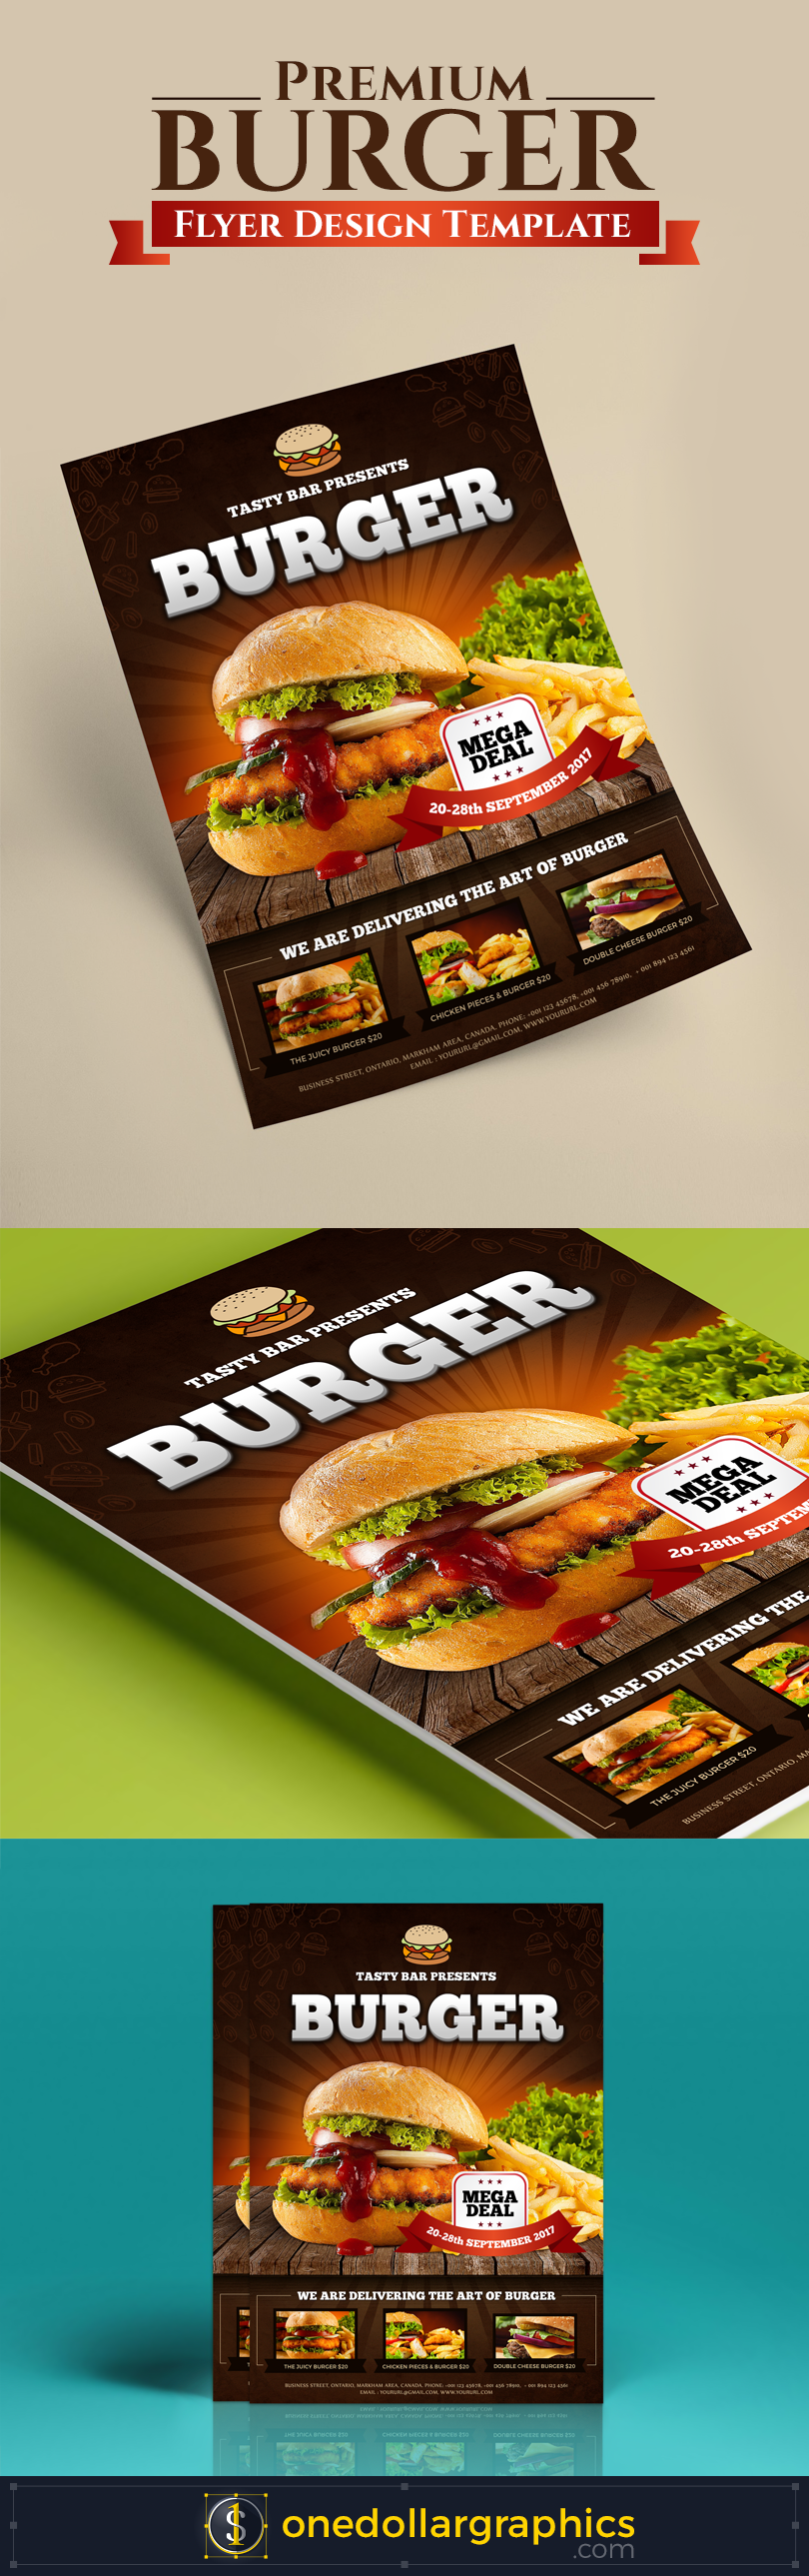 Premium-Burger-Flyer-Template-Design